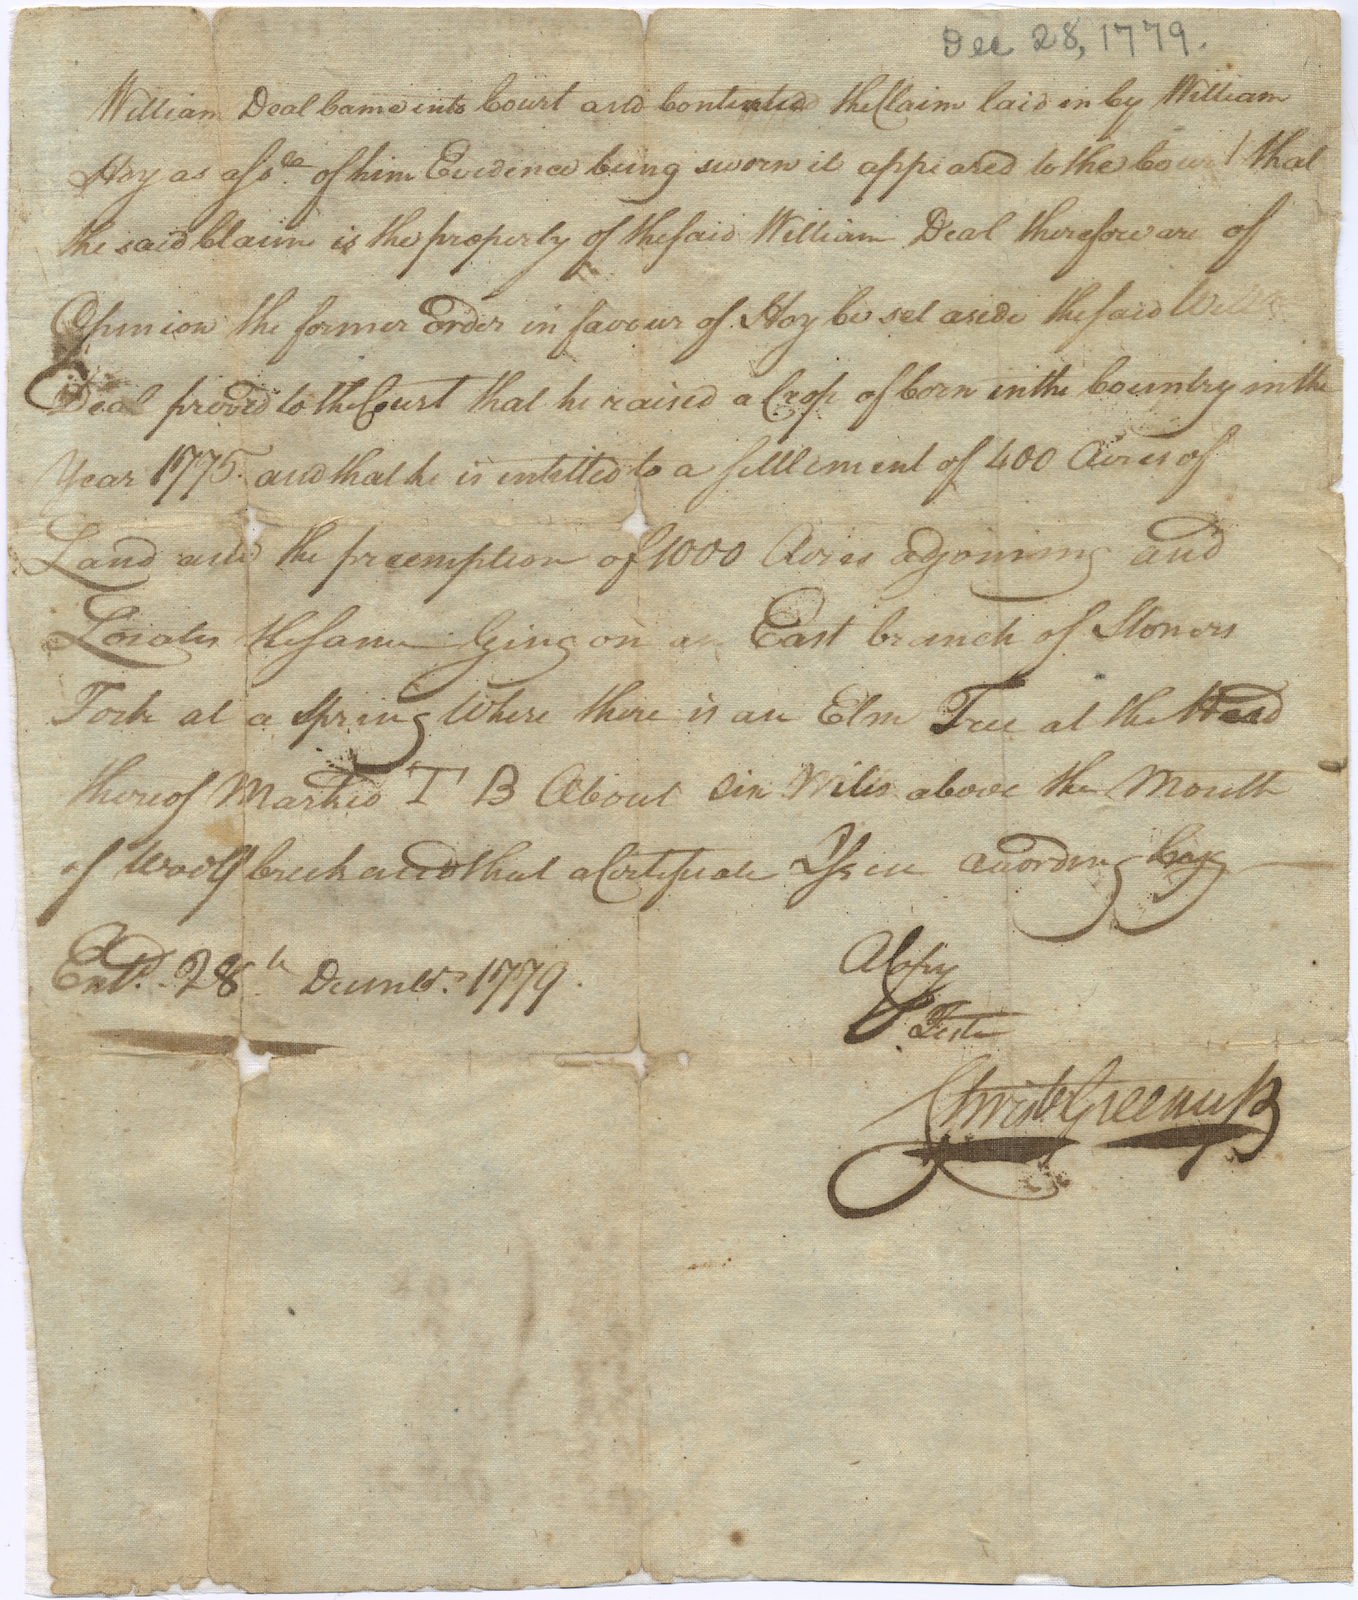 Land entry for William Deal with a court memorandum, [Kentucky County, Virginia]